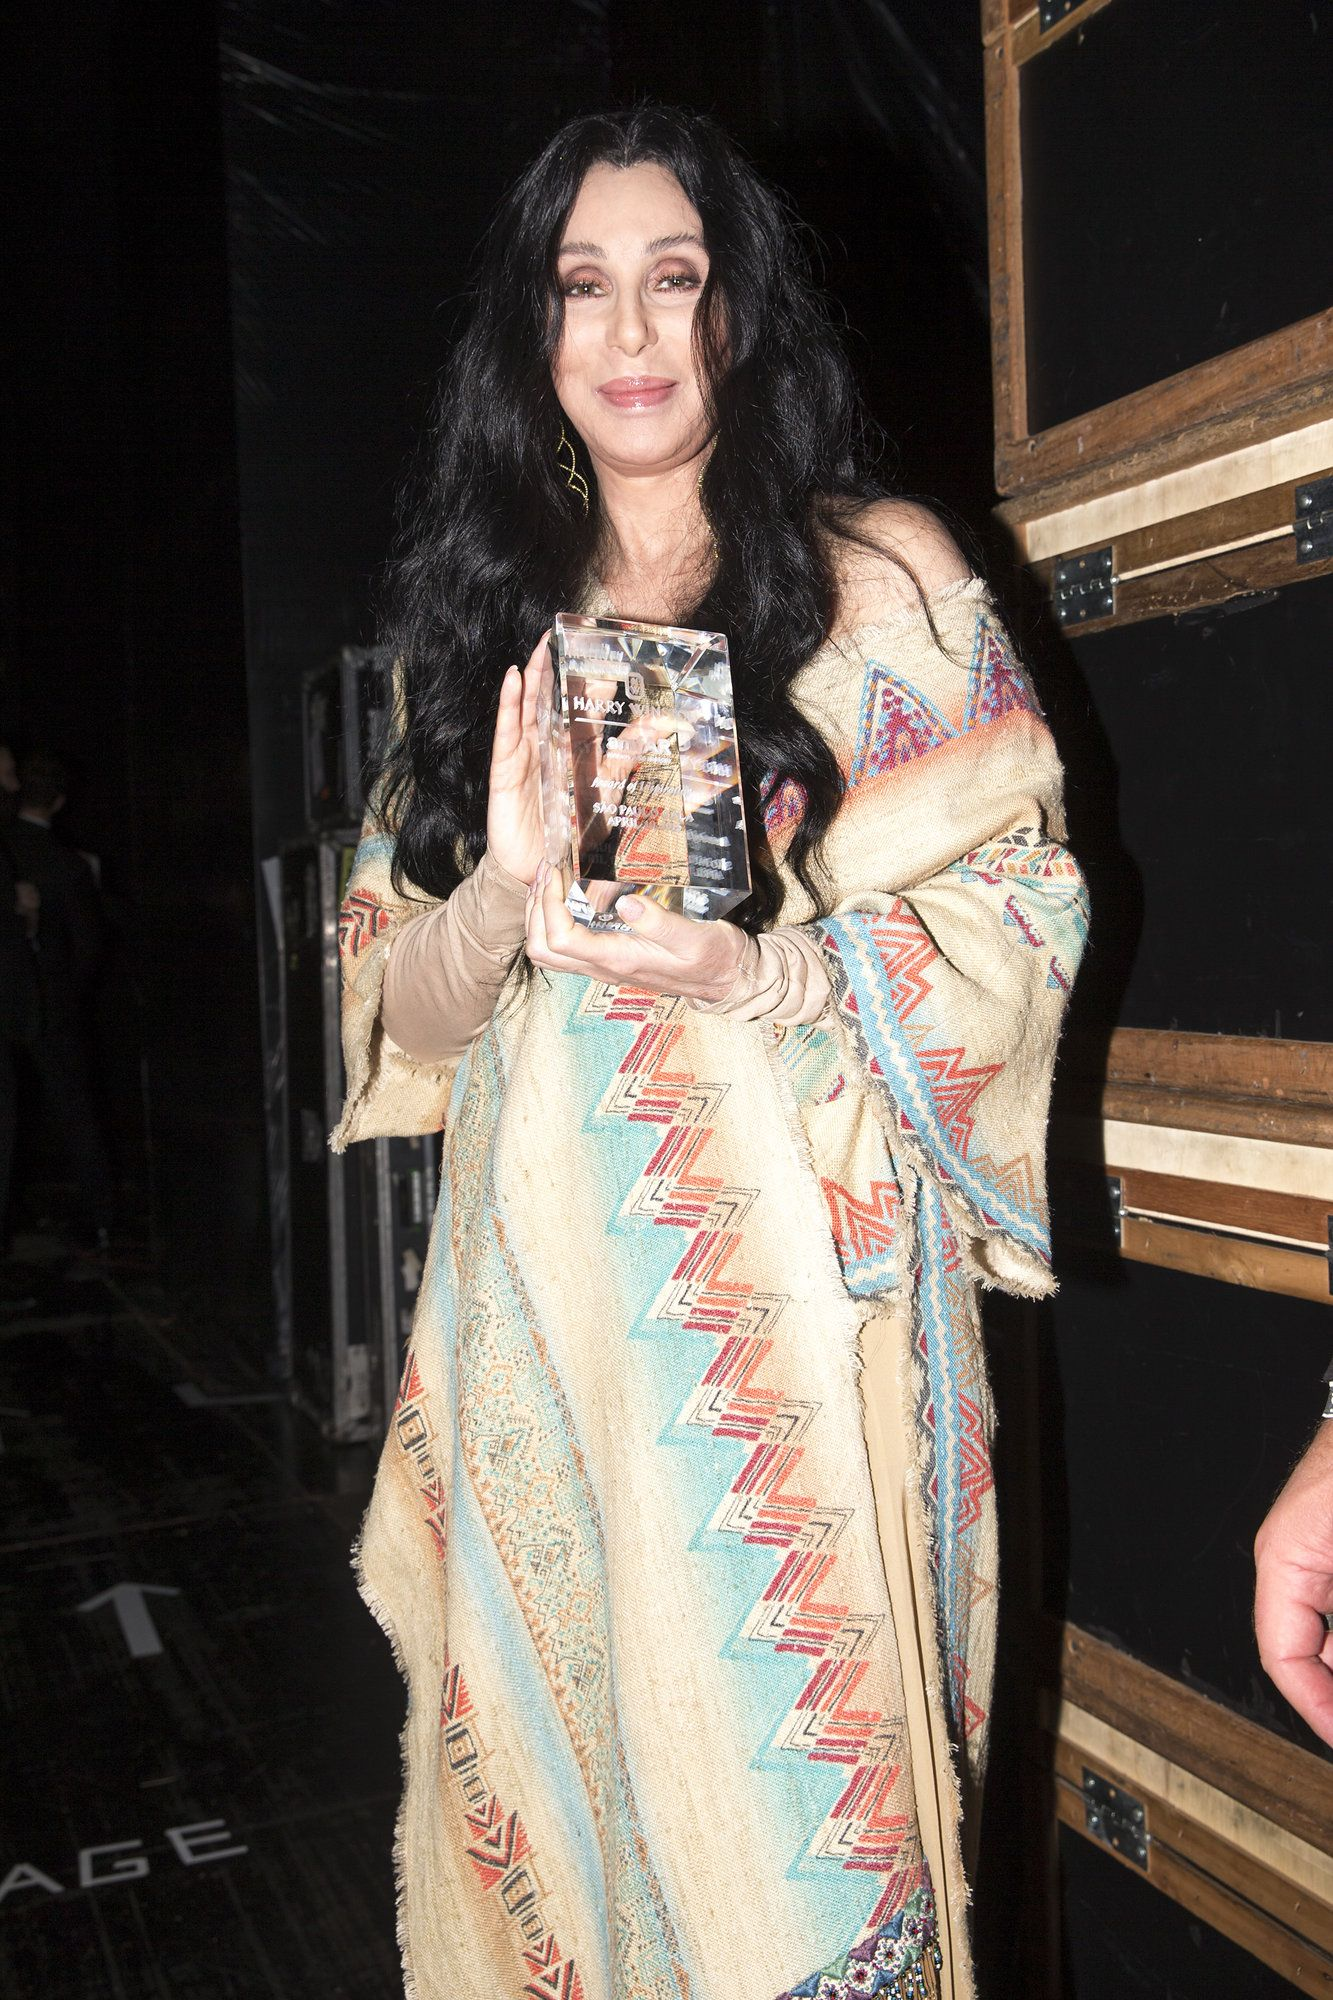 Cher at the annual amfAR The Foundation for AIDS Research Inspiration Gala in São Paulo  Kevin Tachman / BackstageAT  More images: http://bkstge.at/amfARsp2015